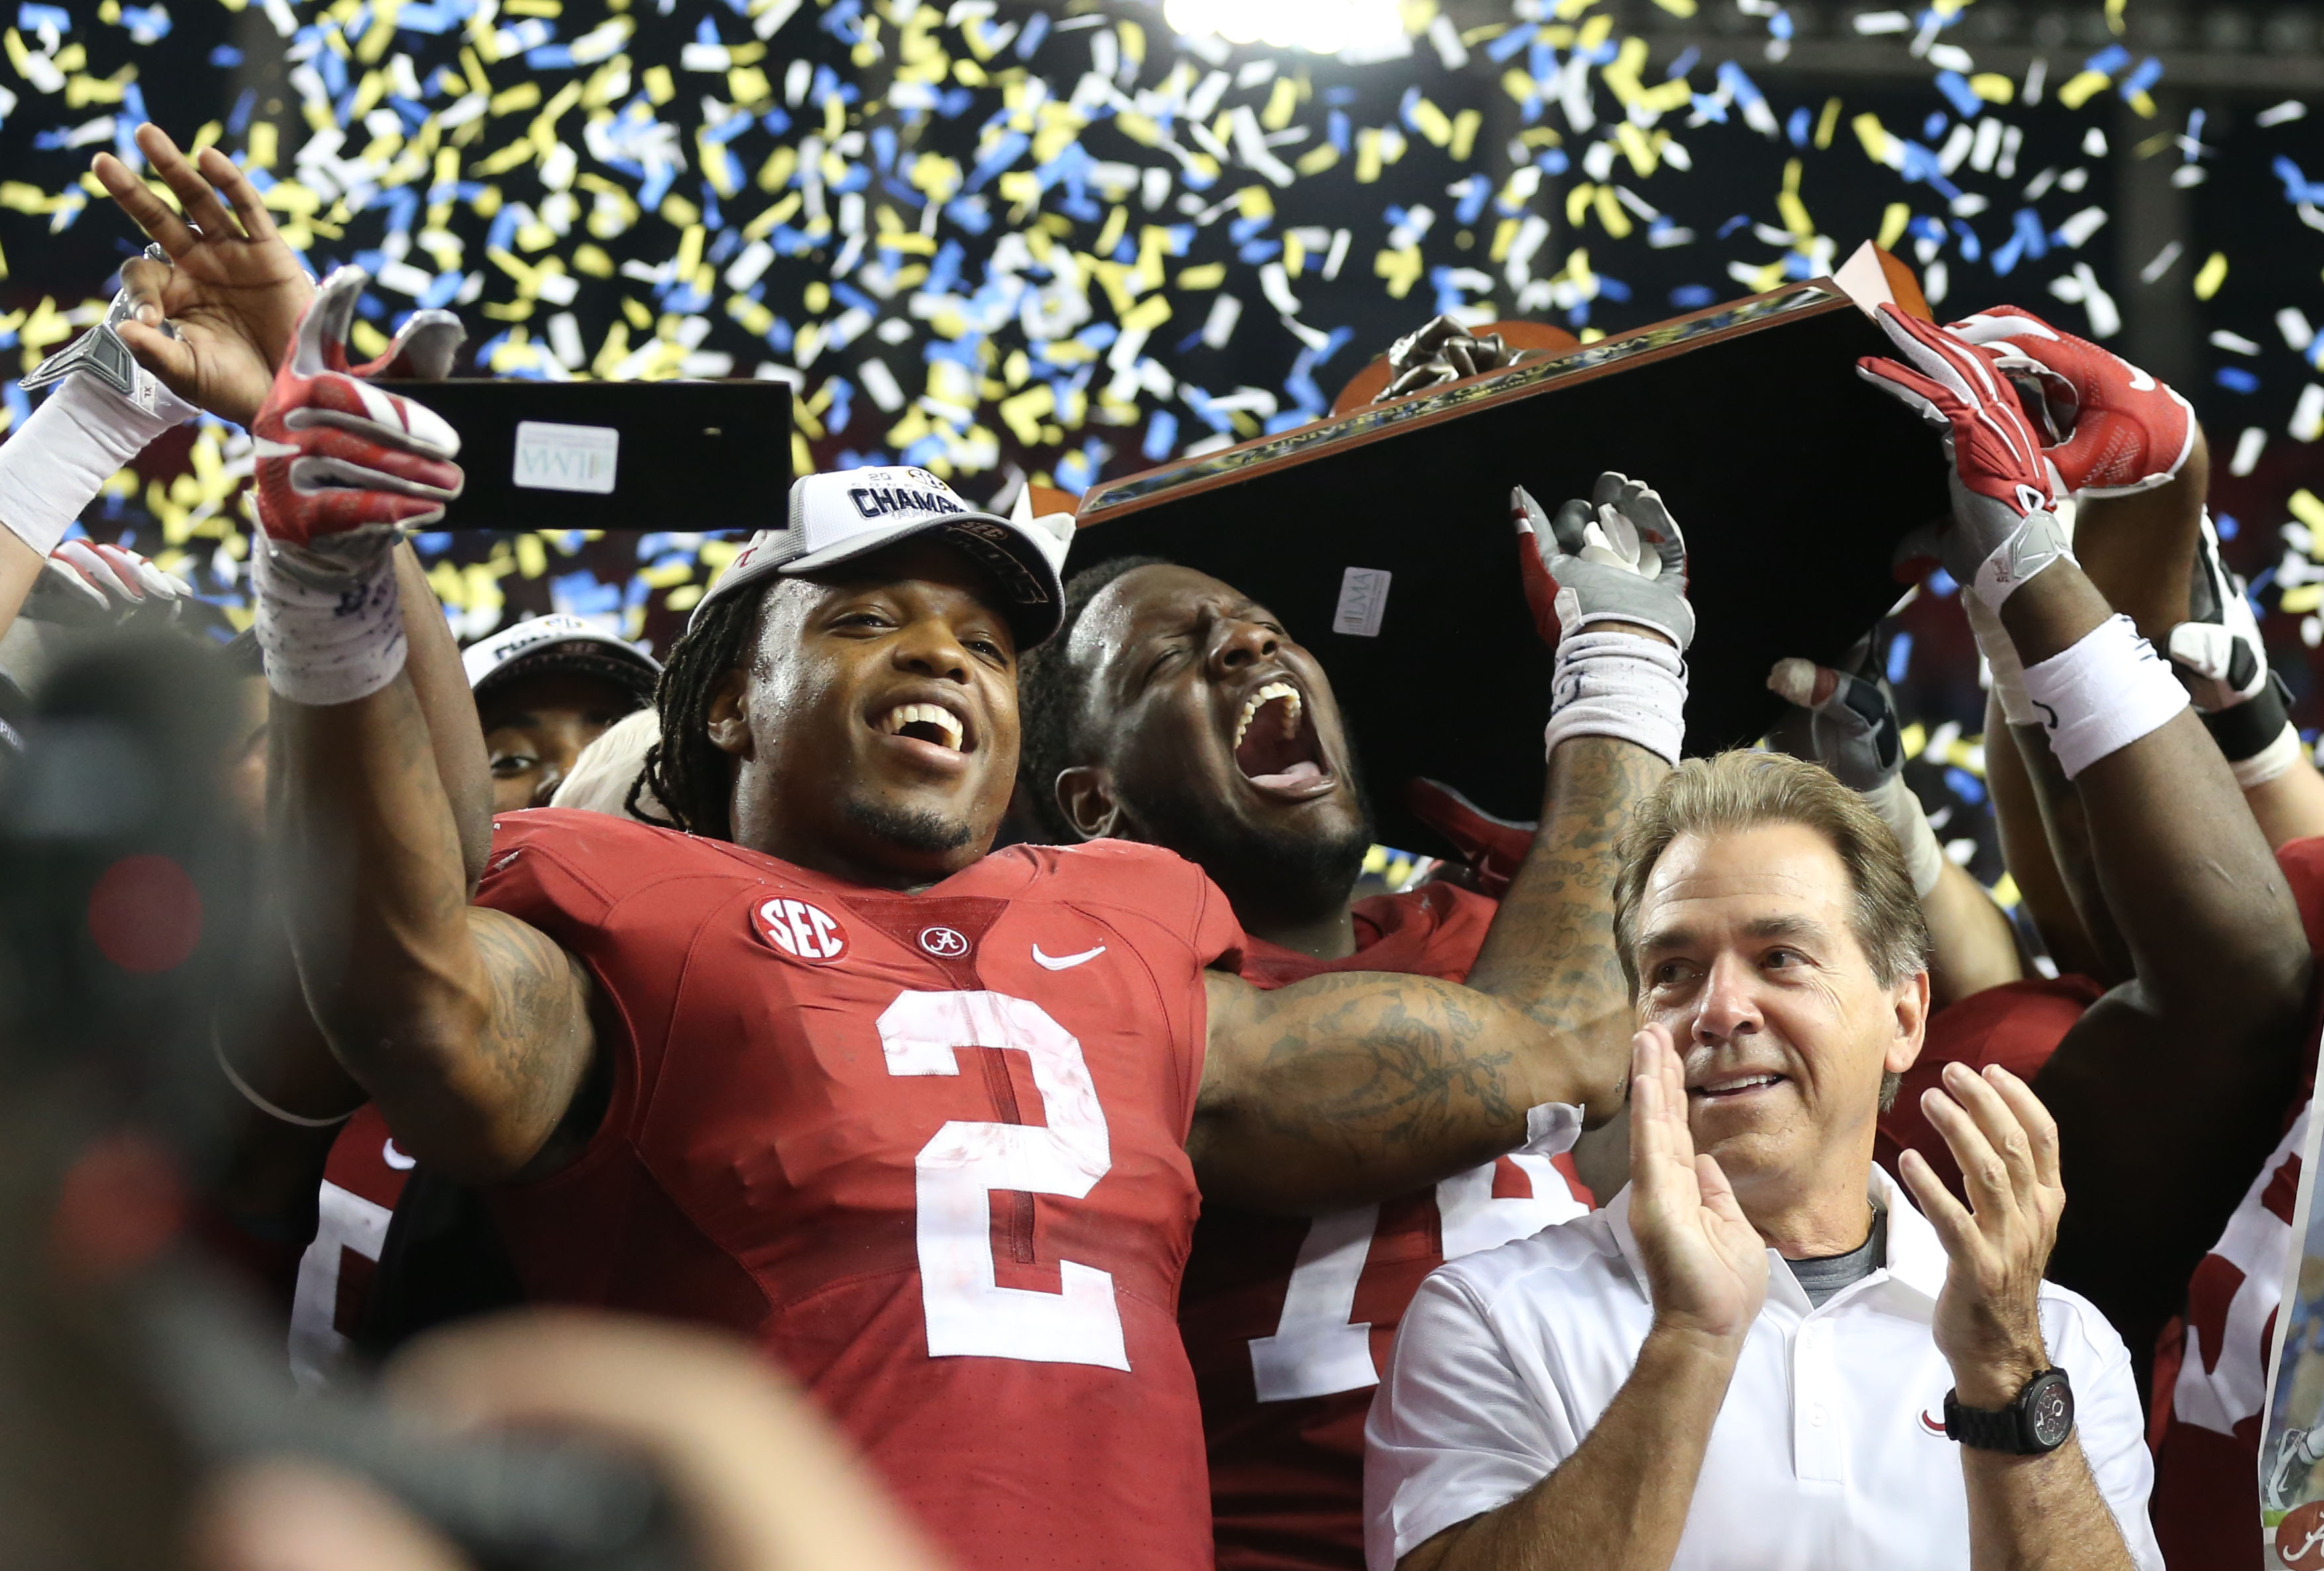 Derrick Henry and the punter who hates running win college football awards night